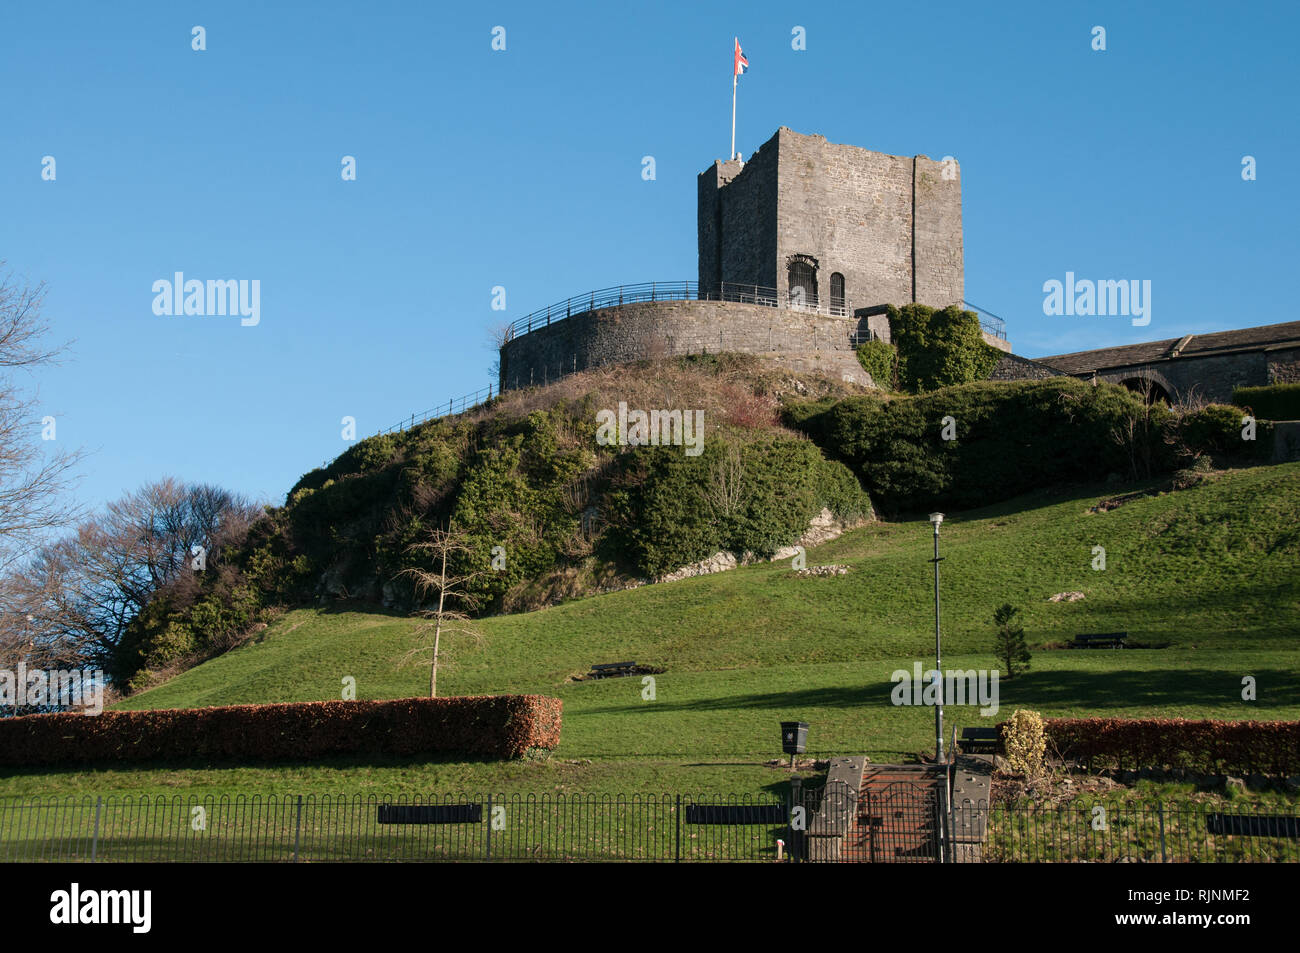 The Grade 1 Listed Castle Keep of Clitheroe castle. A good day out for all the family. - Stock Image